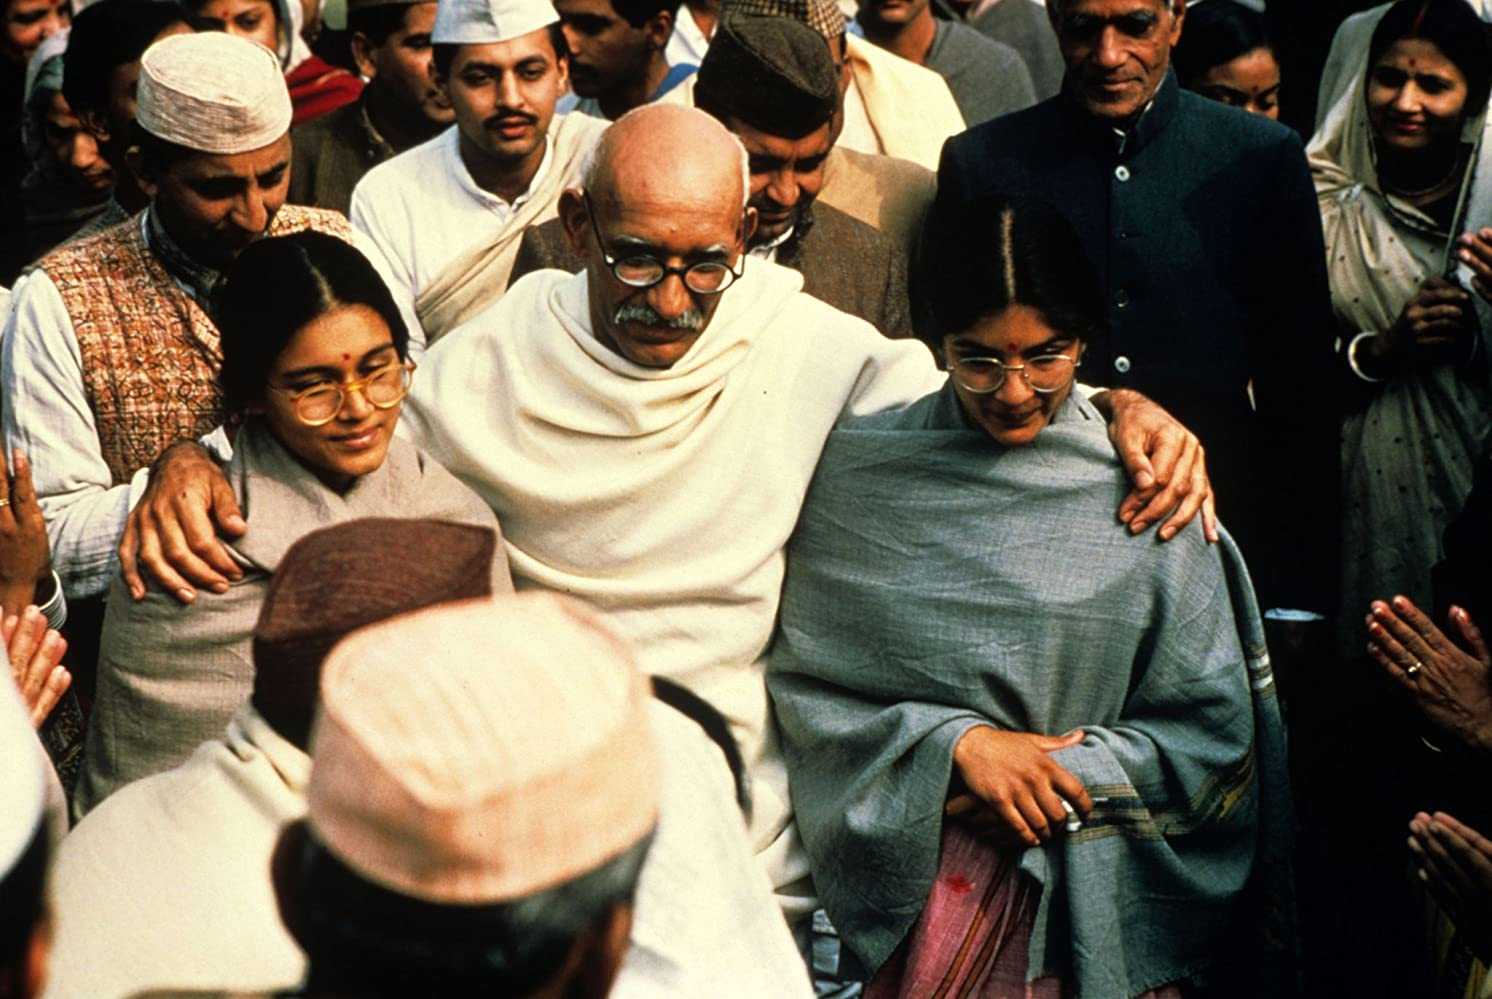 Ben Kingsley, Neena Gupta, and Supriya Pathak in Gandhi (1982)